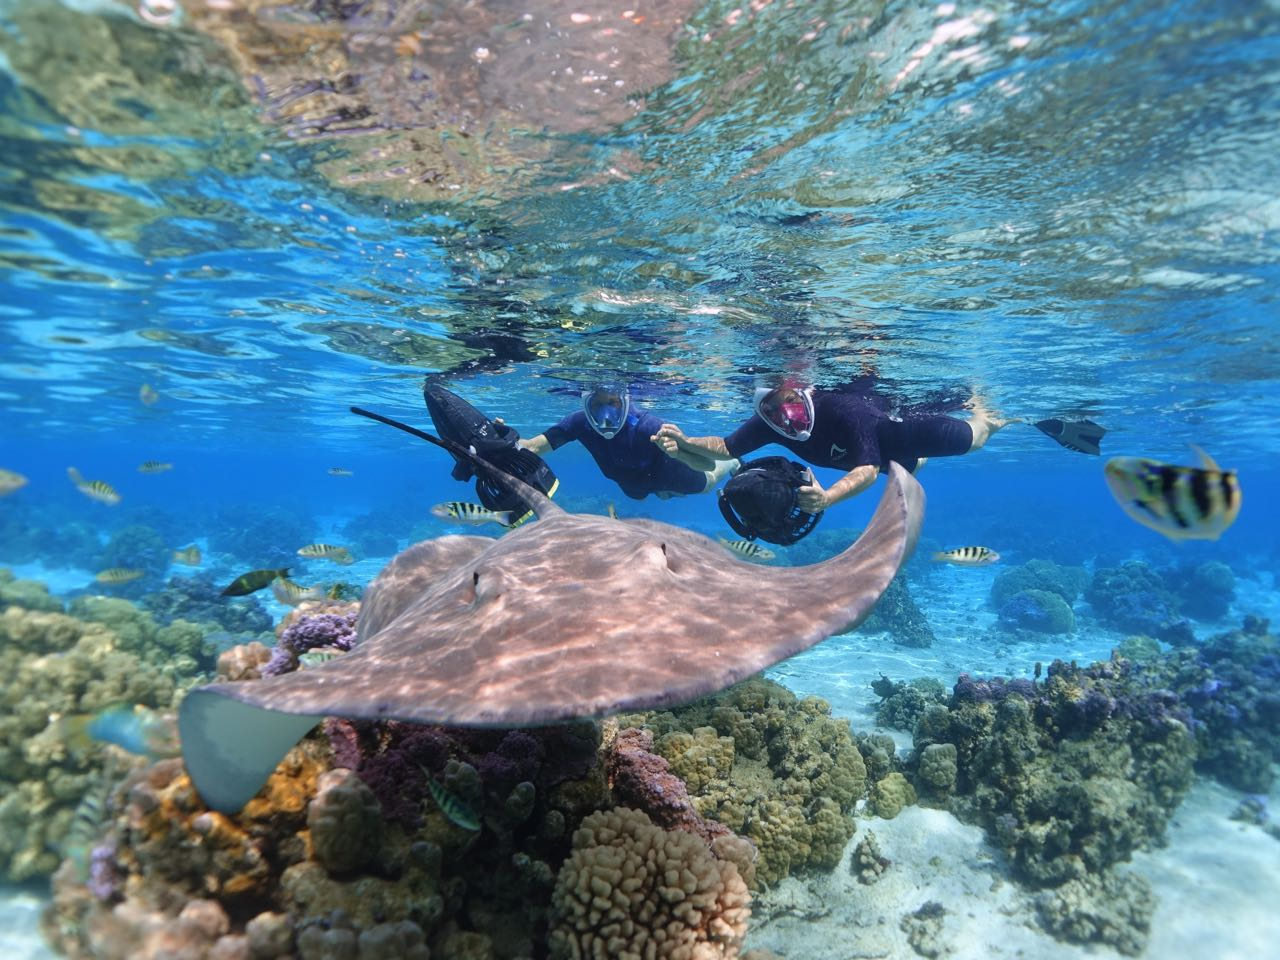 https://tahititourisme.cn/wp-content/uploads/2020/09/Sea-Scooter-Snorkeling-Tour-à-moorea-copie-2.jpg